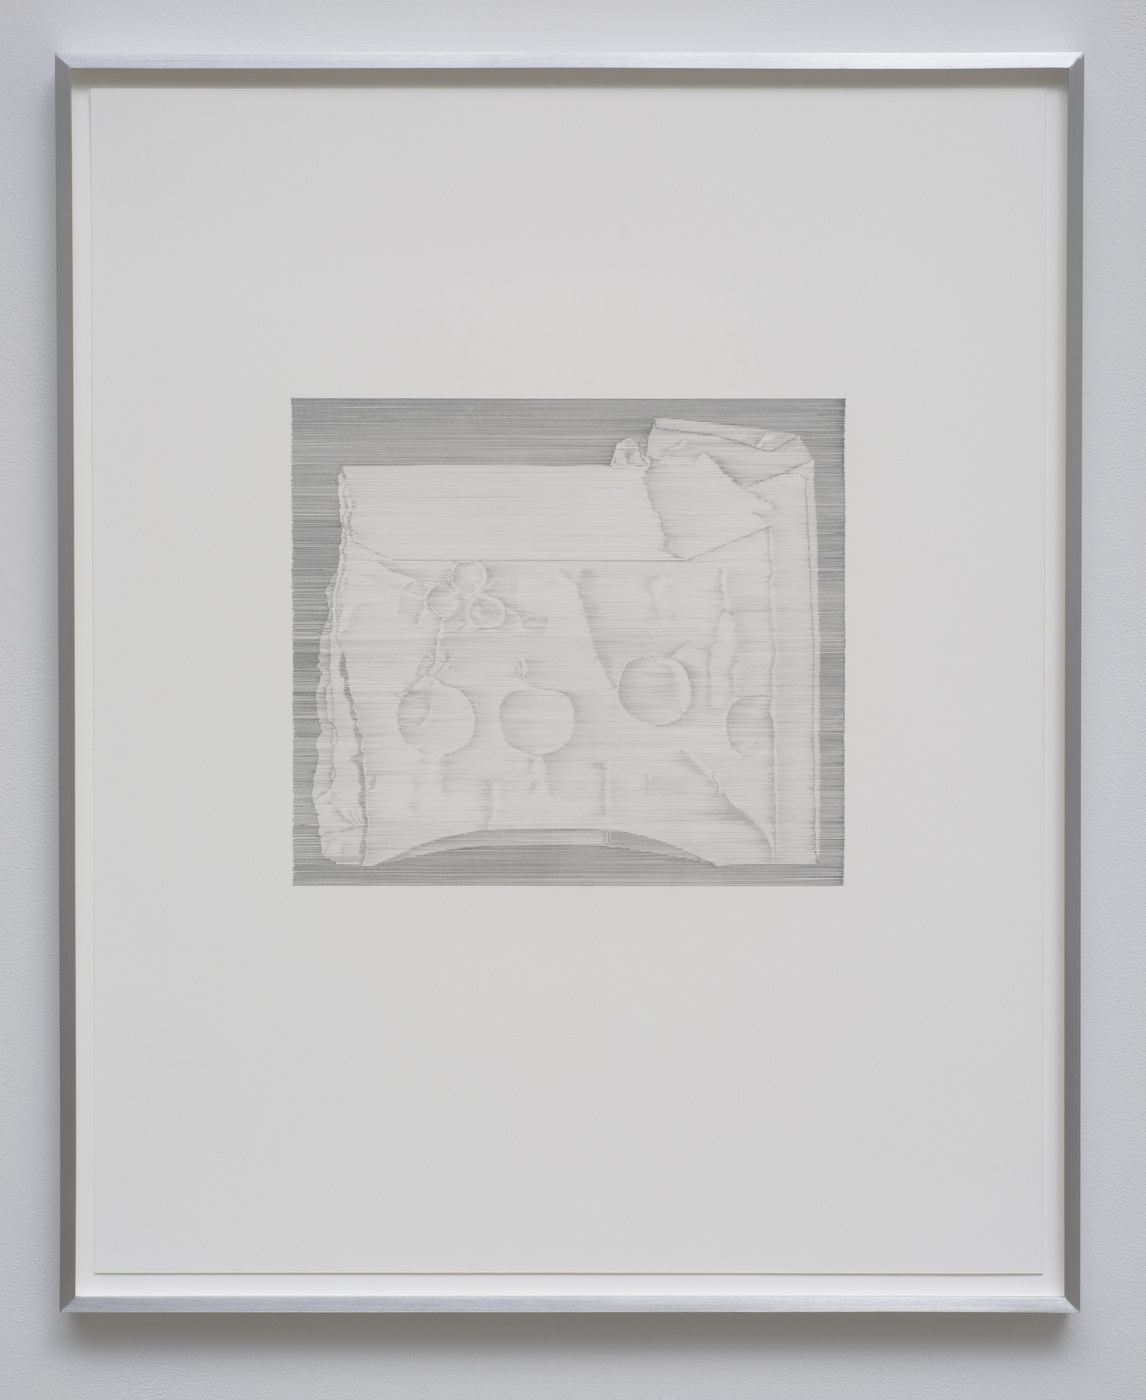 dm_2014_machine drawing no. 5_framed